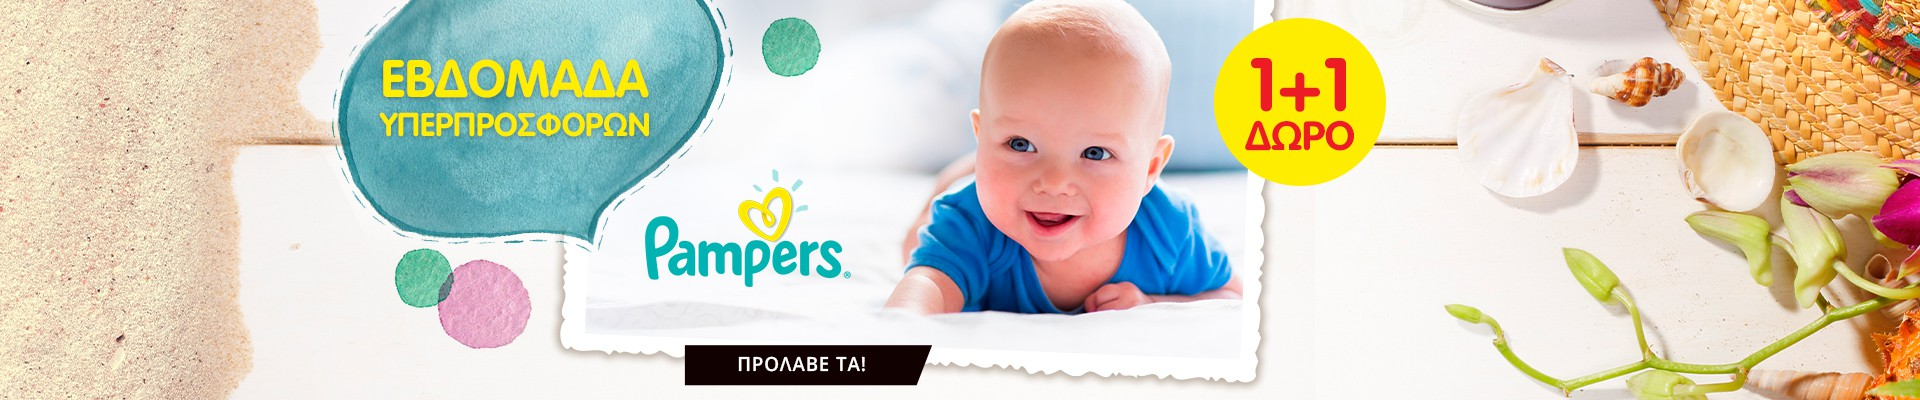 Pampers 1+1 25/7/18